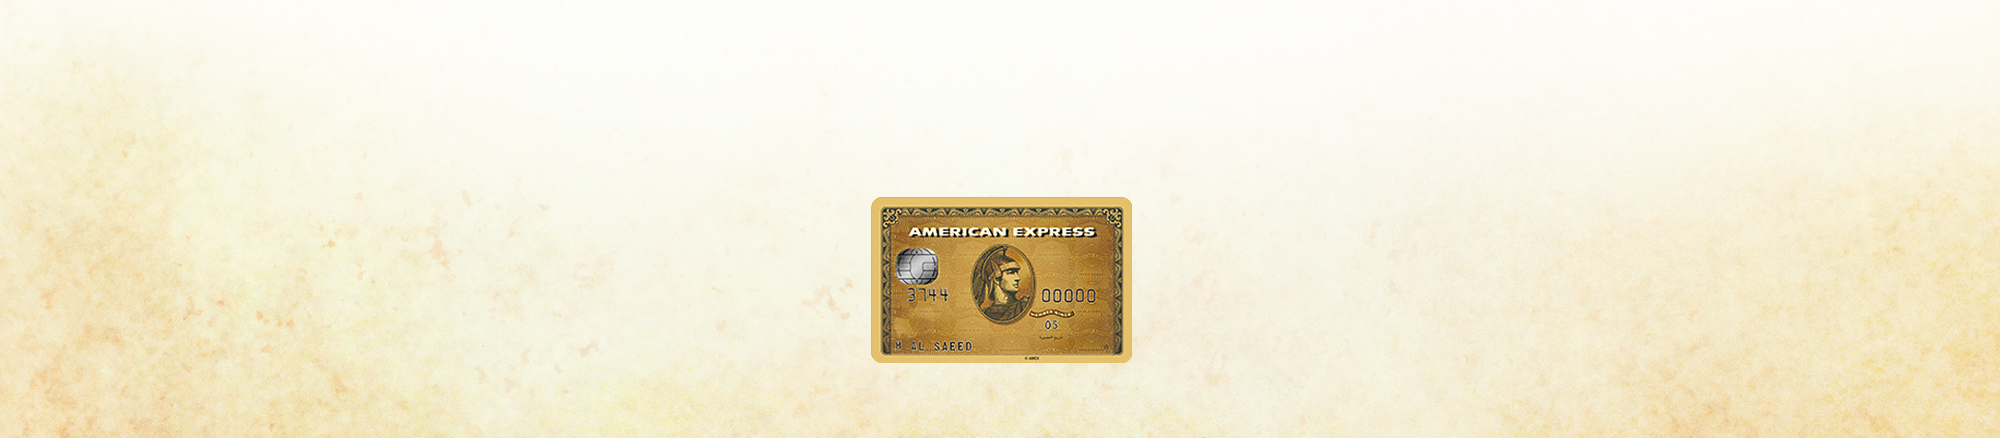 The American Express Gold Card Blom Bank Retail